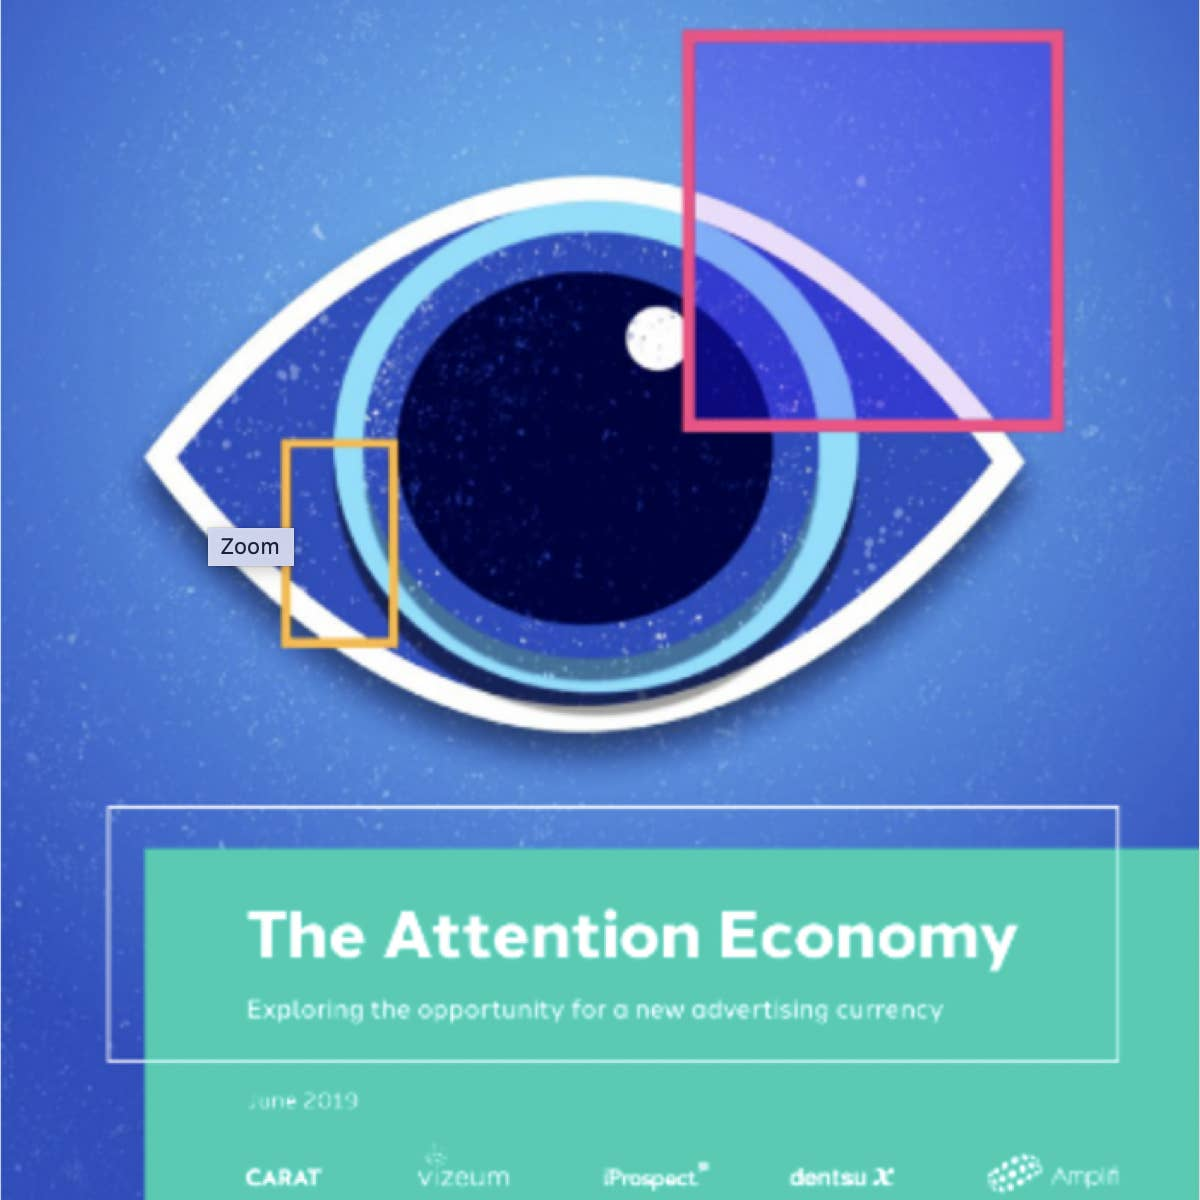 The attention economy